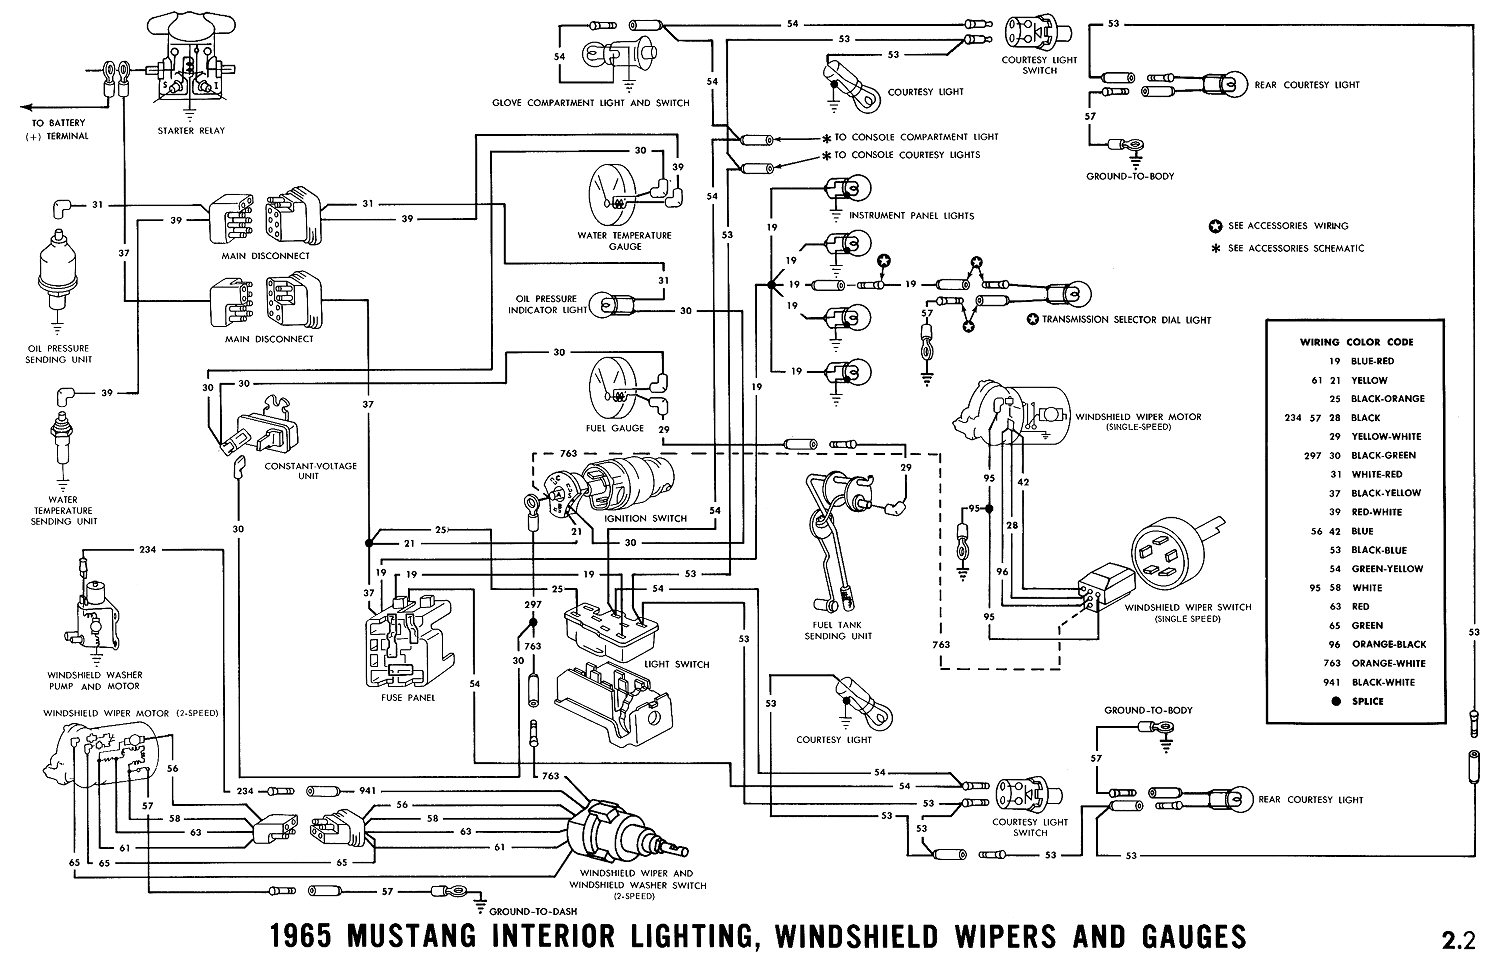 Chevelle Ignition Switch Wiring Diagram Library 1968 Schematic 66 Wire Images Gallery 1965 Mustang Diagrams Average Joe Restoration